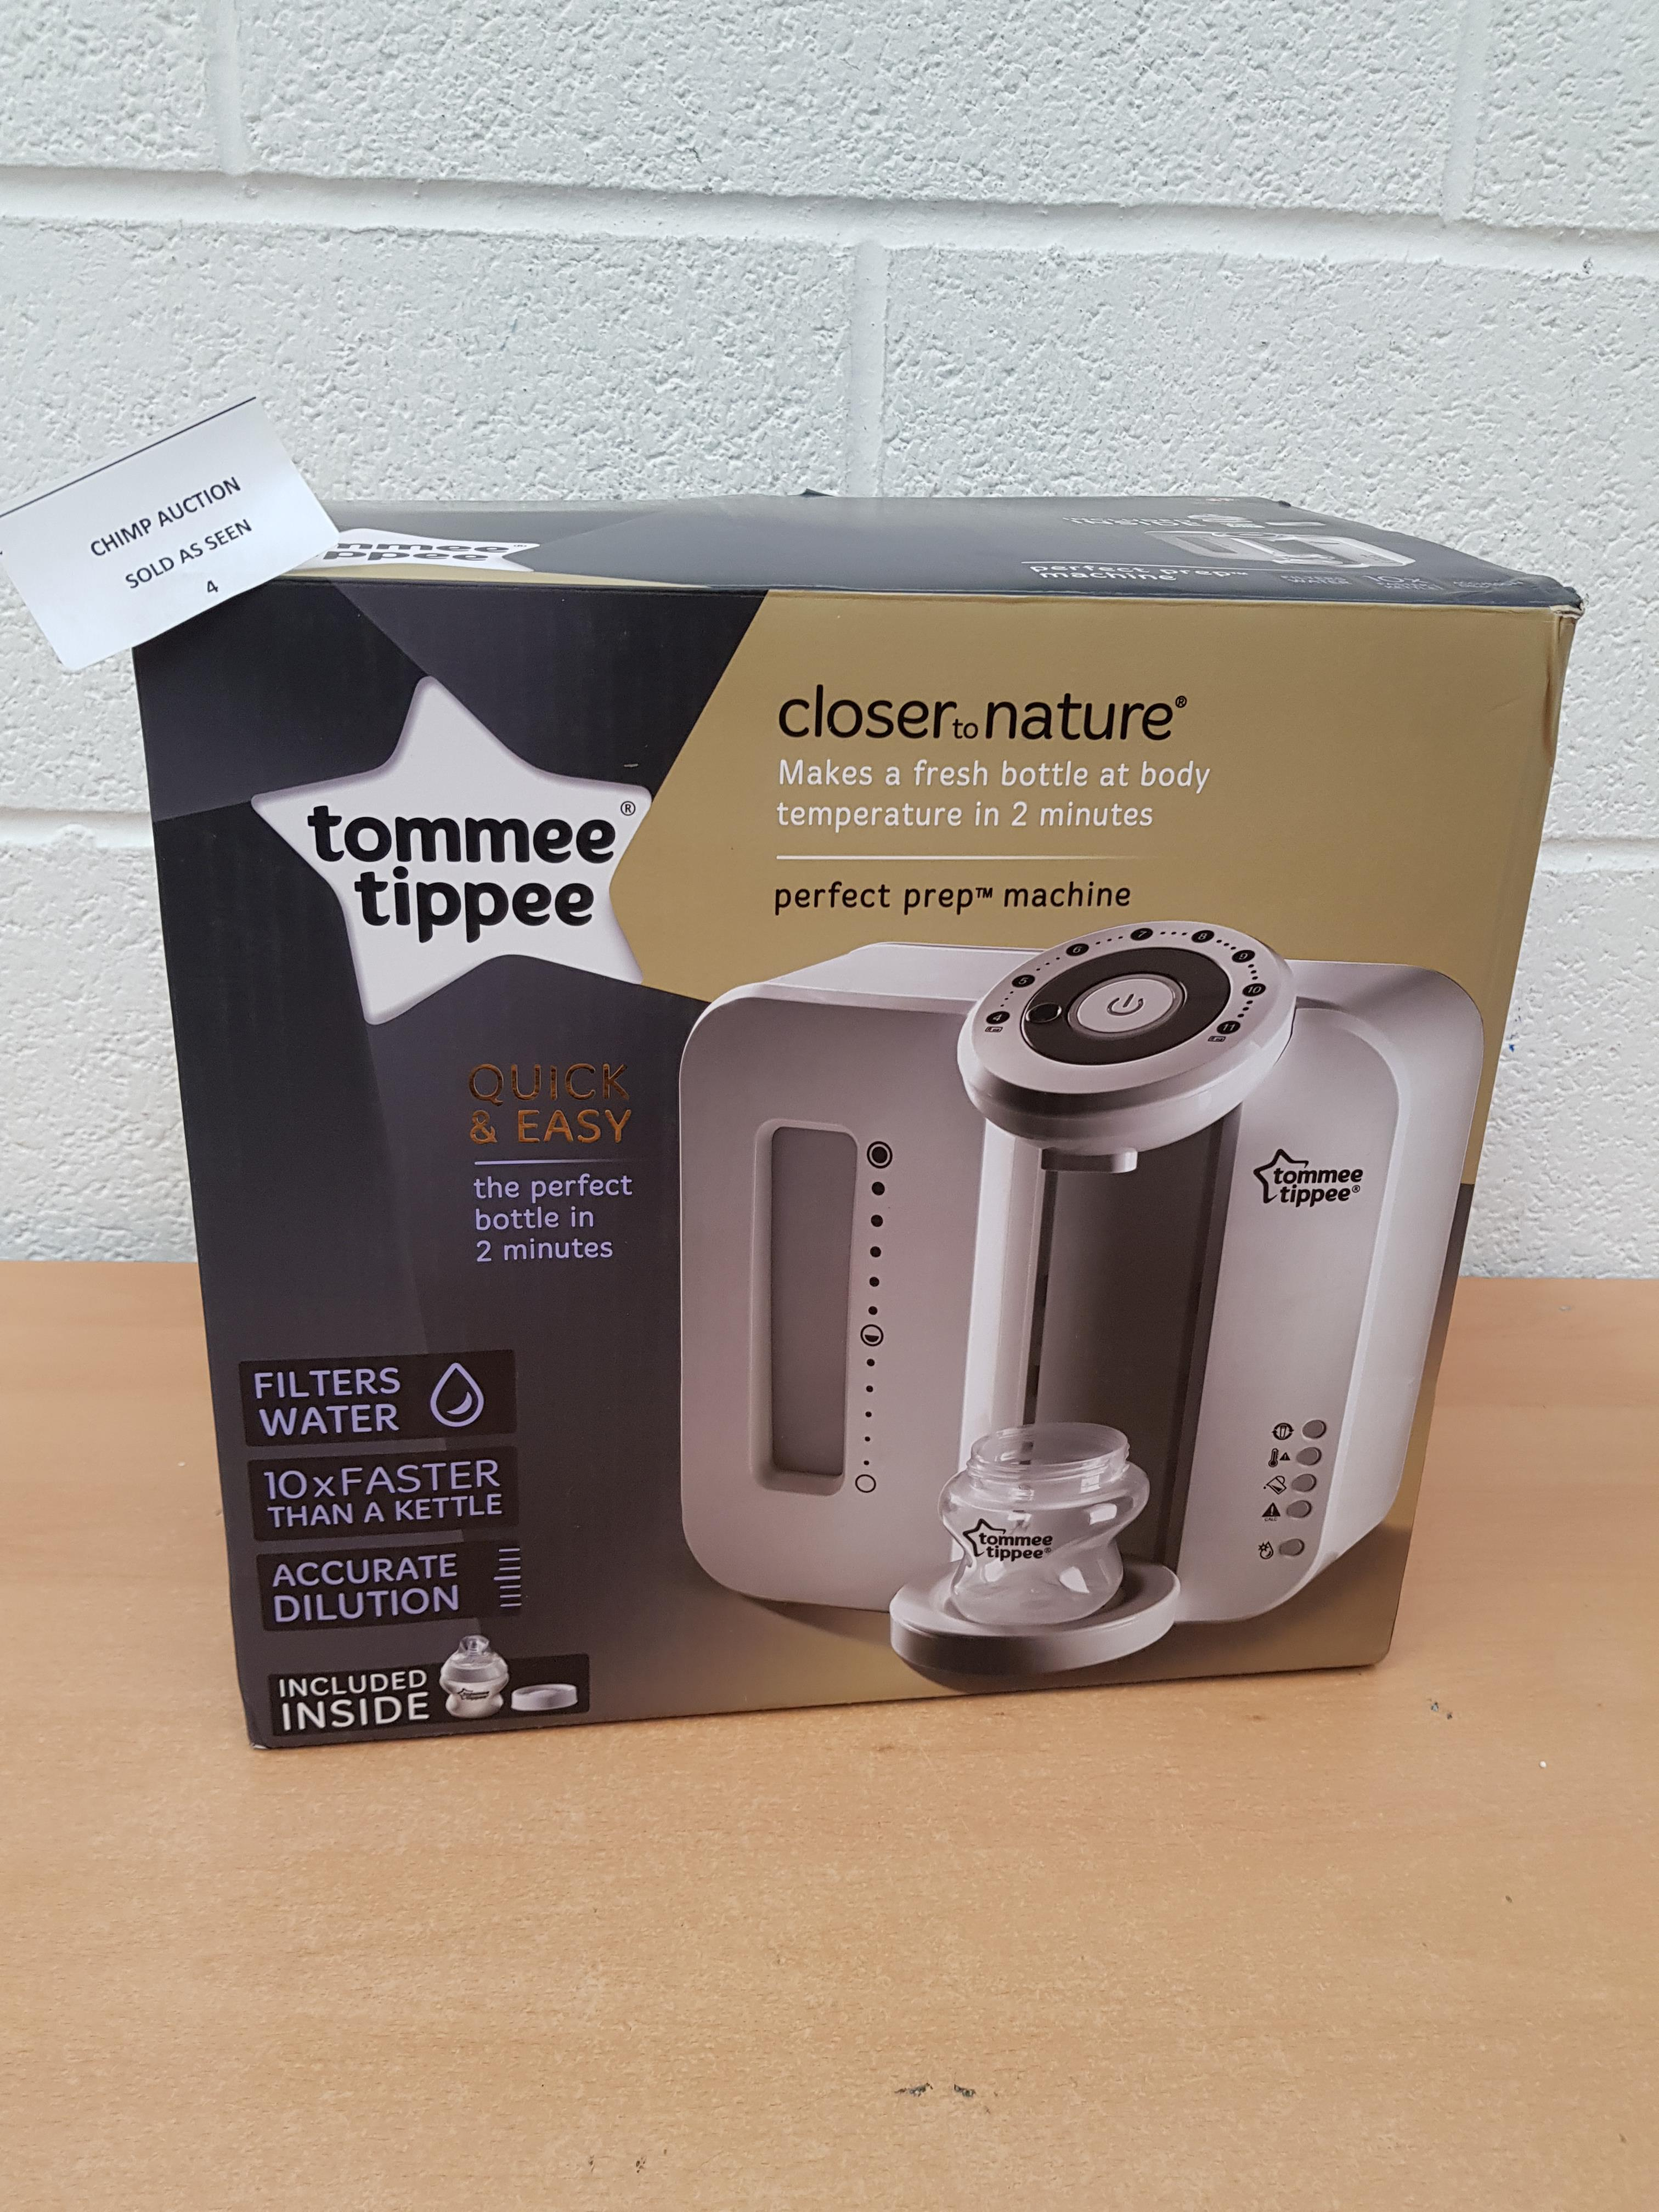 Lot 4 - Tommee Tippee Perfect Prep Machine RRP £129.99.